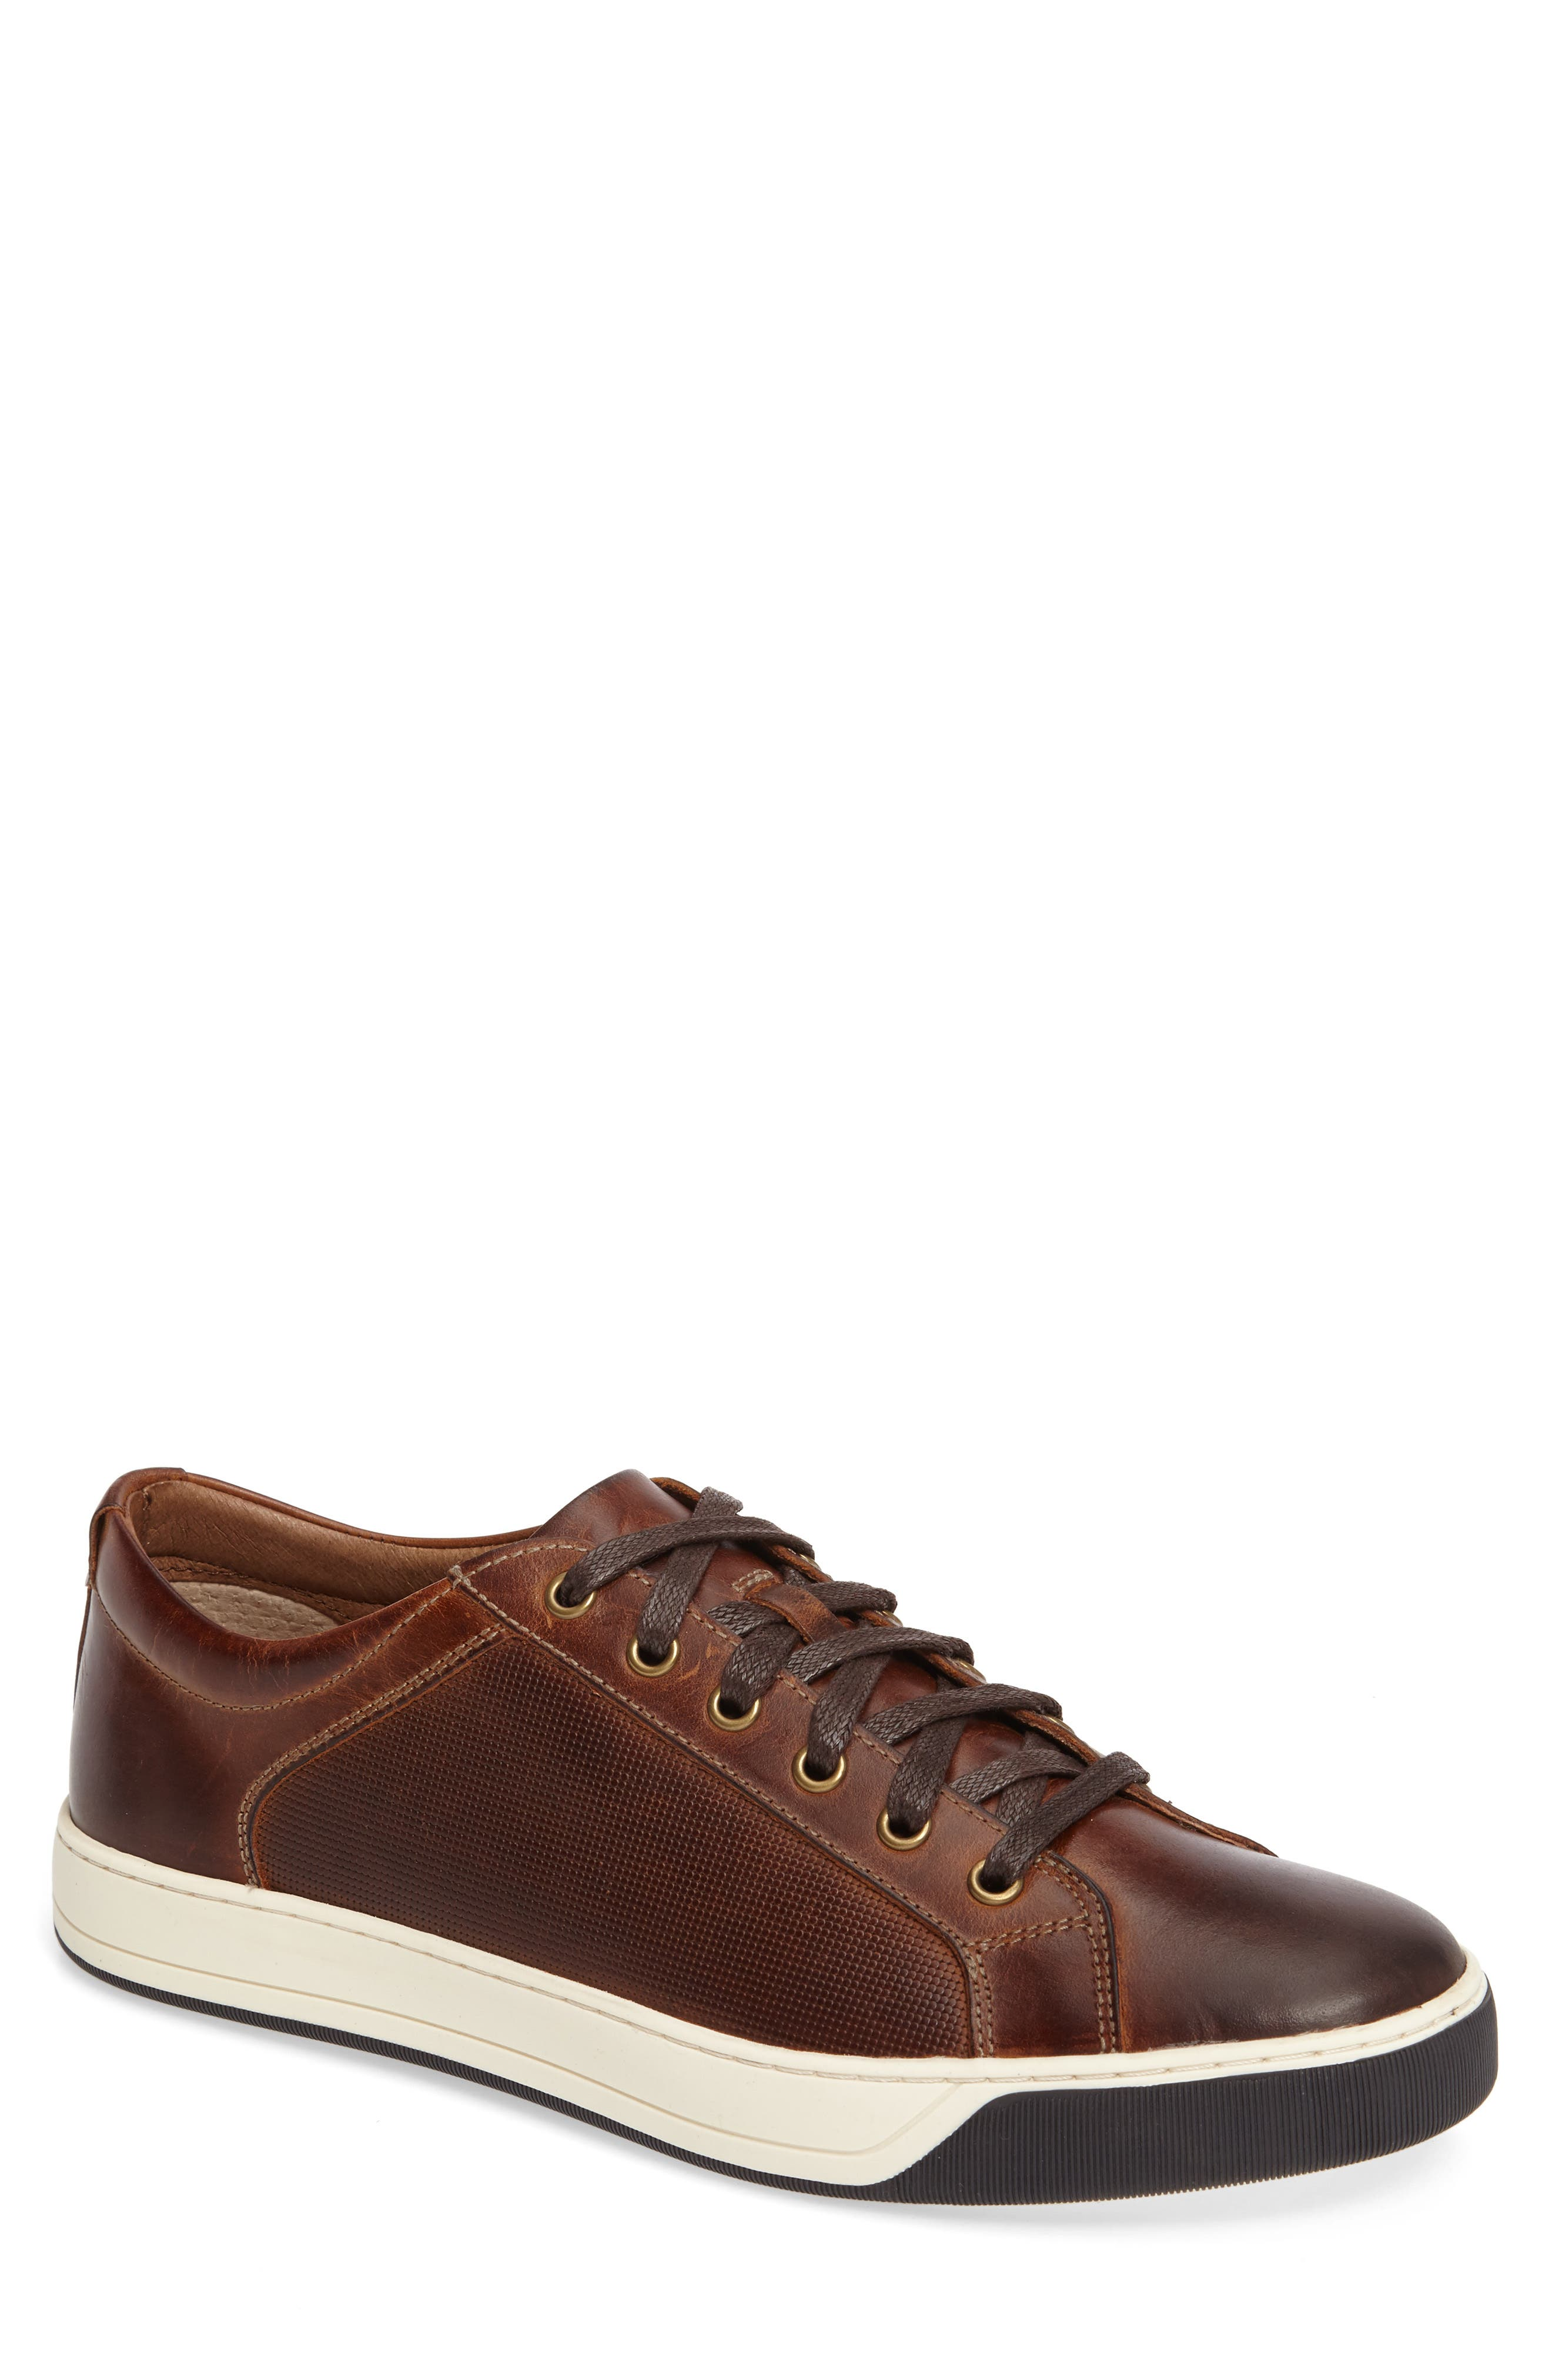 Allister Sneaker,                         Main,                         color, BROWN LEATHER